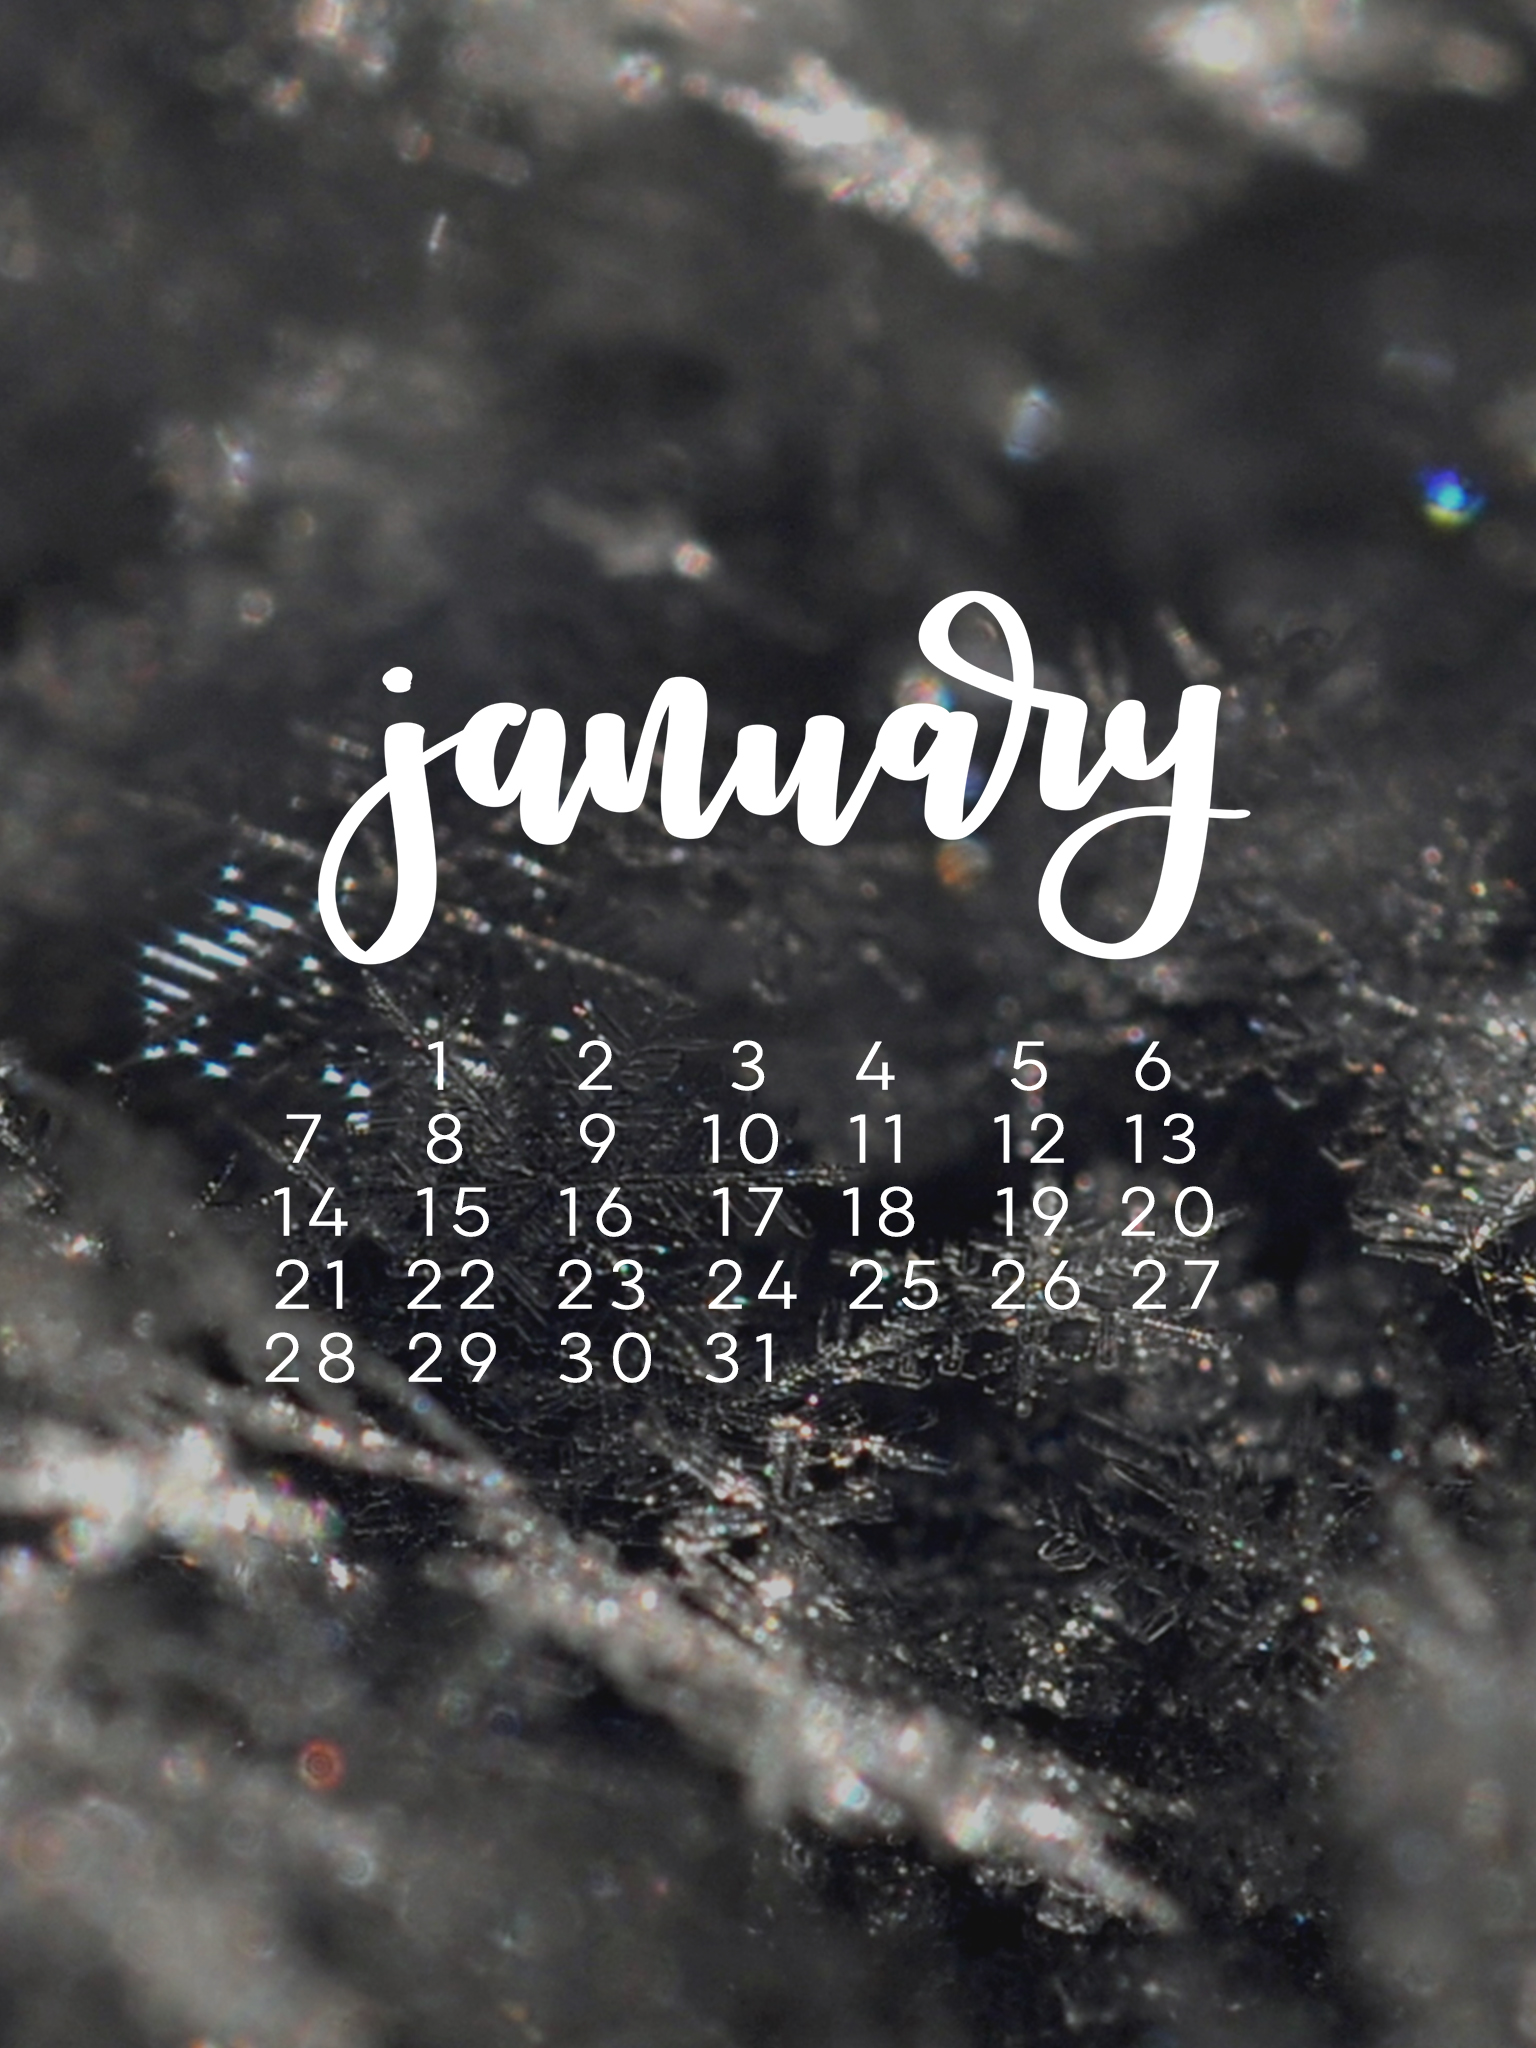 January Wallpaper 2018 Calendar Many HD Wallpaper